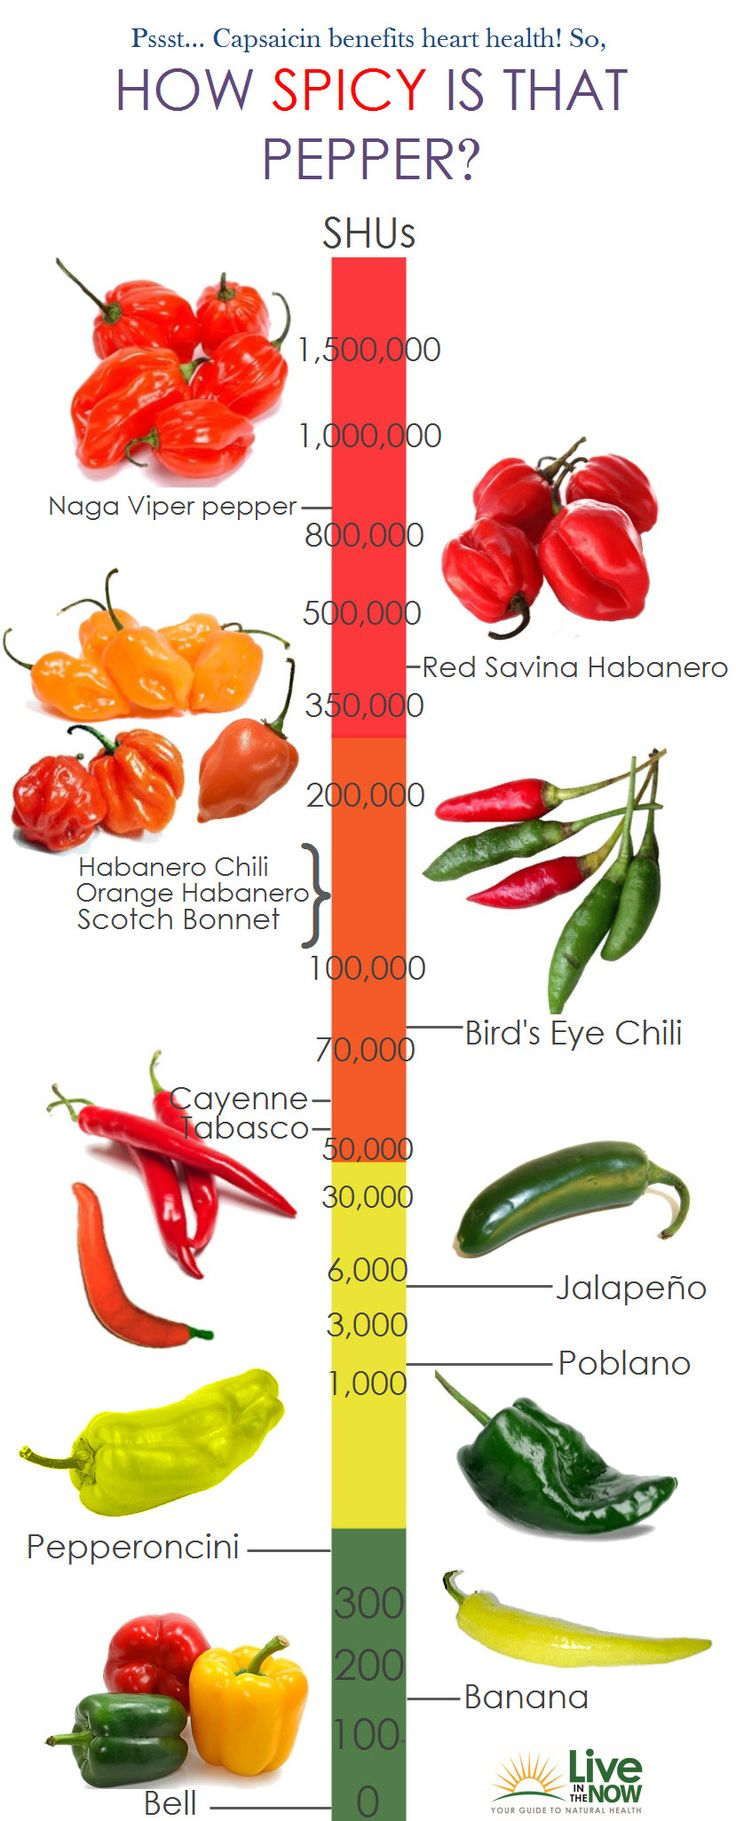 Considering that pepper has many great properties, let's see how spicy are types of peppers. For example Naga Viper Pepper is the most spicy pepper in this classification, while Red Savino Soda Habanero, Habanero Chili, Orange Habanero and Scotch Bonnet are lesser.